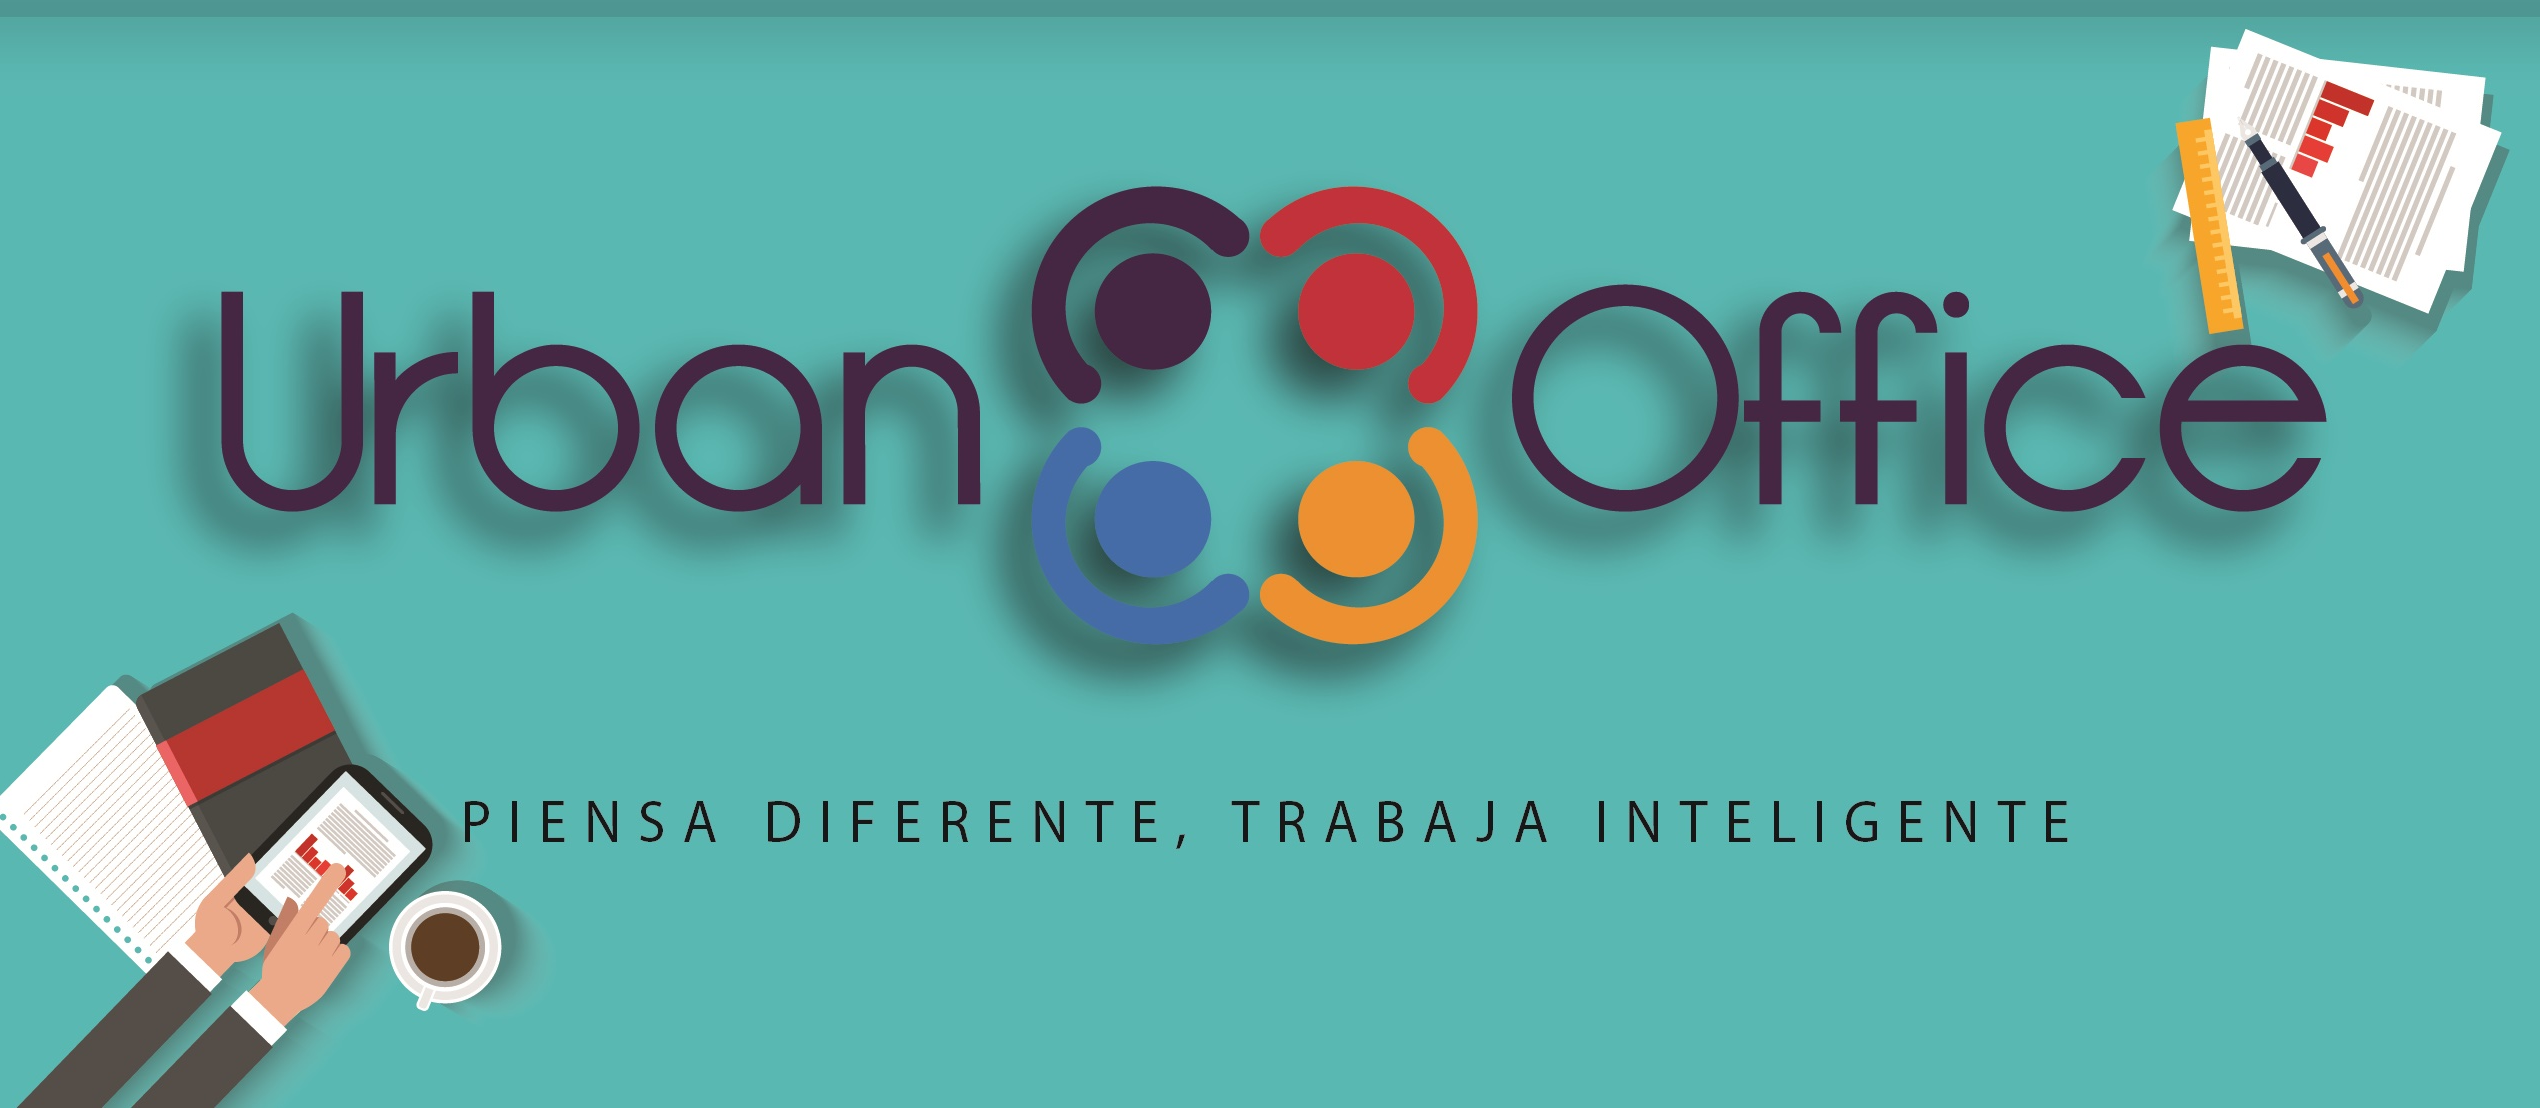 Urban Office, San Pedro Sula - Read Reviews & Book Online